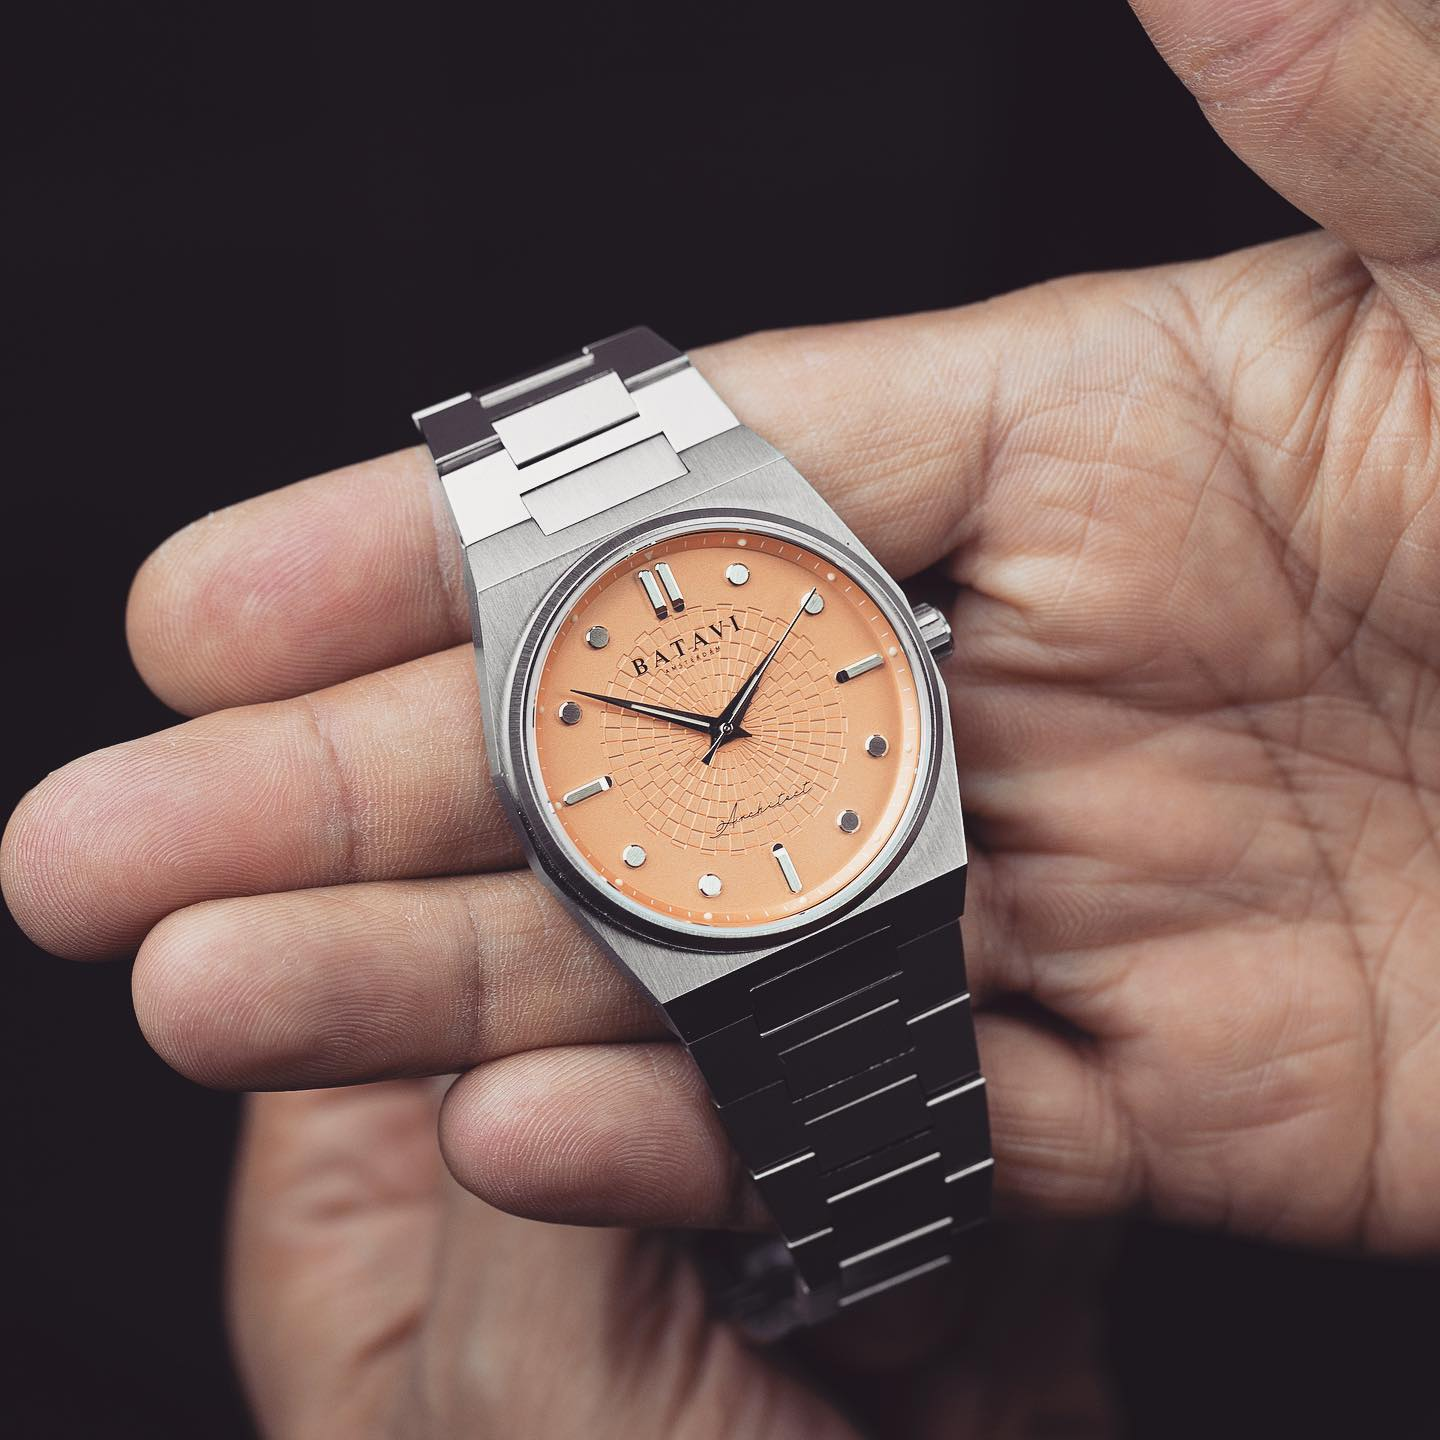 INTRODUCING: Is the Batavi Architect the sharpest microbrand take on the integrated bracelet sports watch?